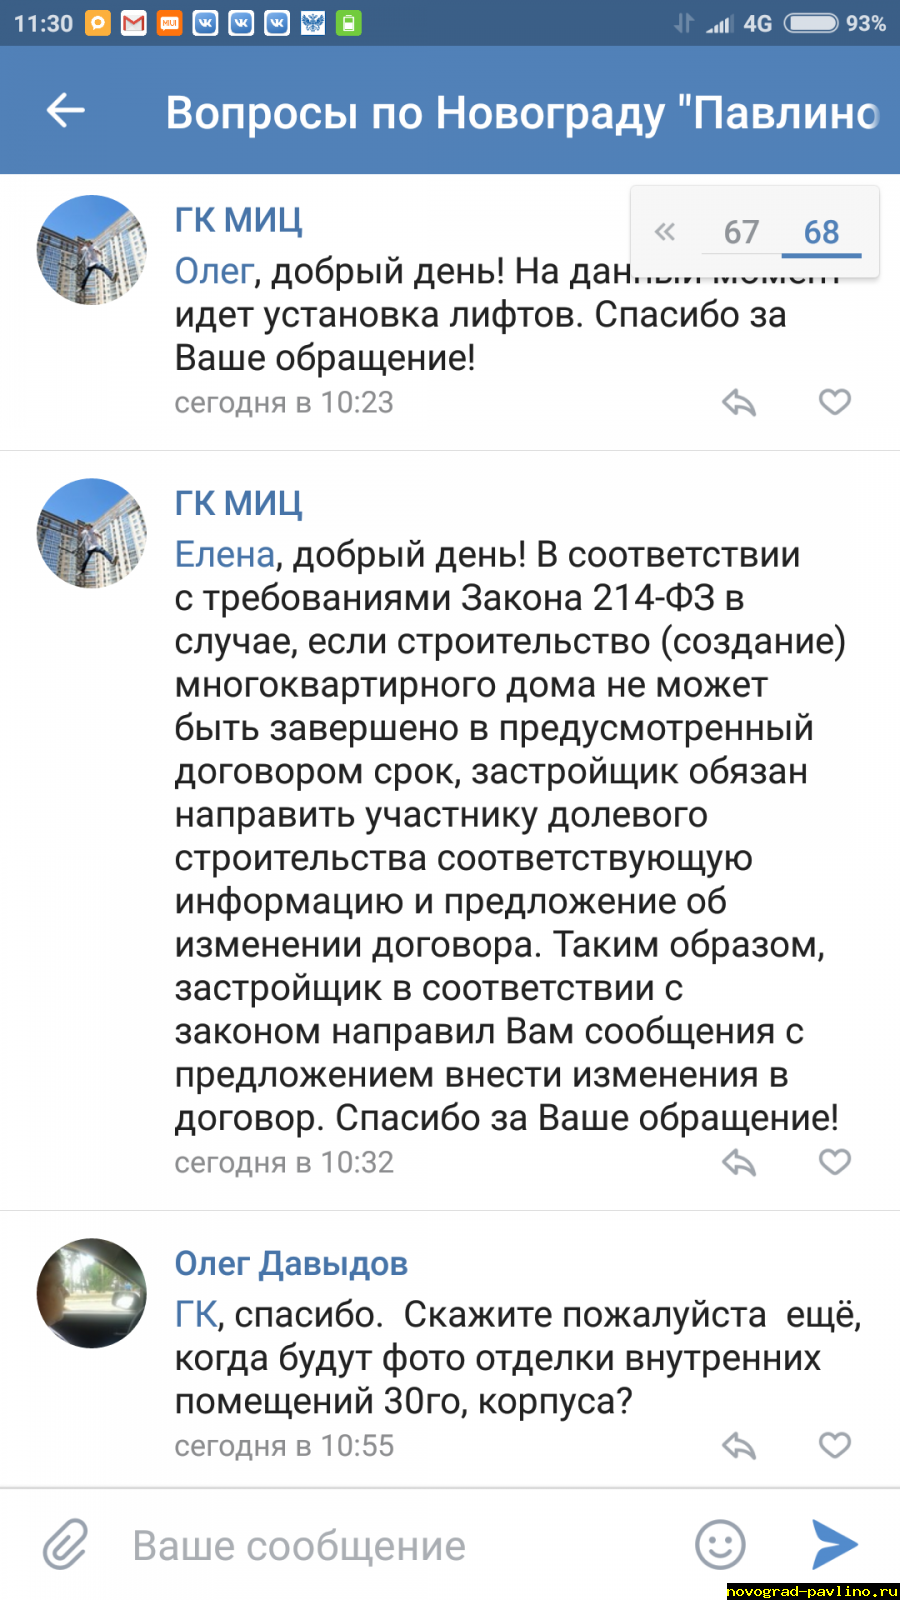 Screenshot_2017-11-07-11-30-42-006_com.vkontakte.android.png